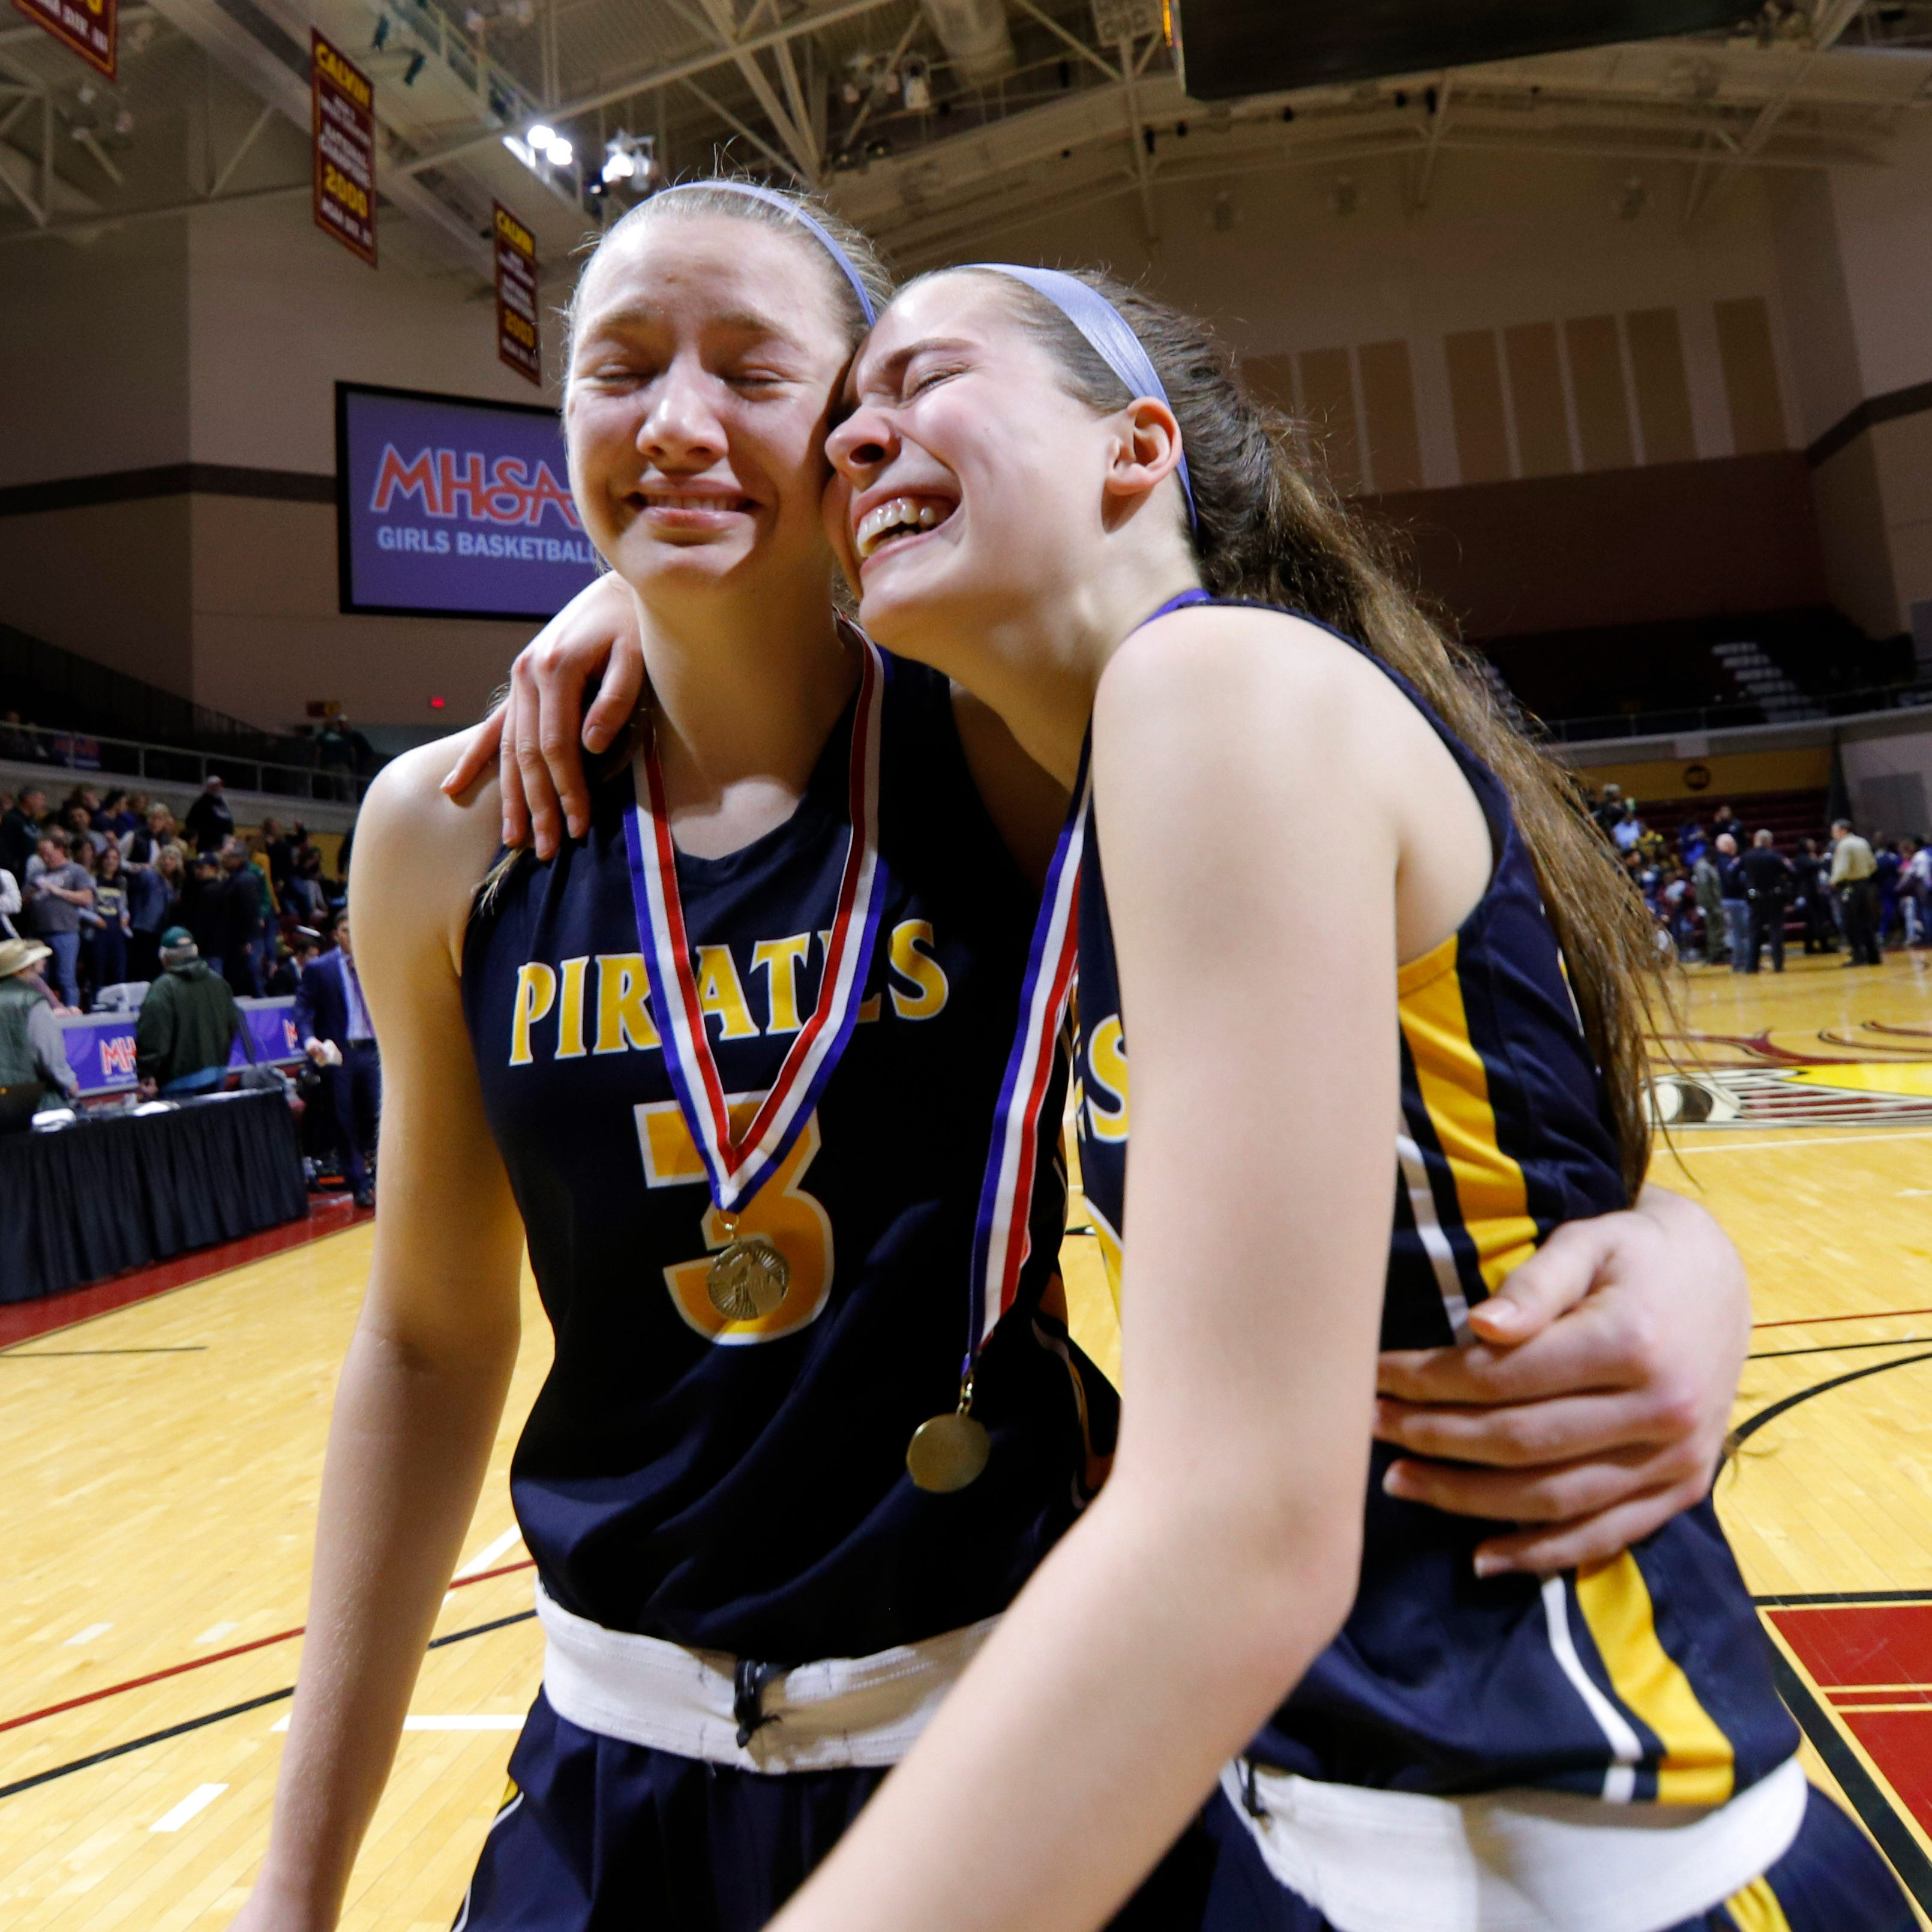 Pewamo-Westphalia's Ellie Droste, right, and Hannah Spitzley react as they walk off the court after winning the MHSAA Division 3 championship, Saturday, March 23, 2019, in Grand Rapids, Mich. P-W won 40-33.